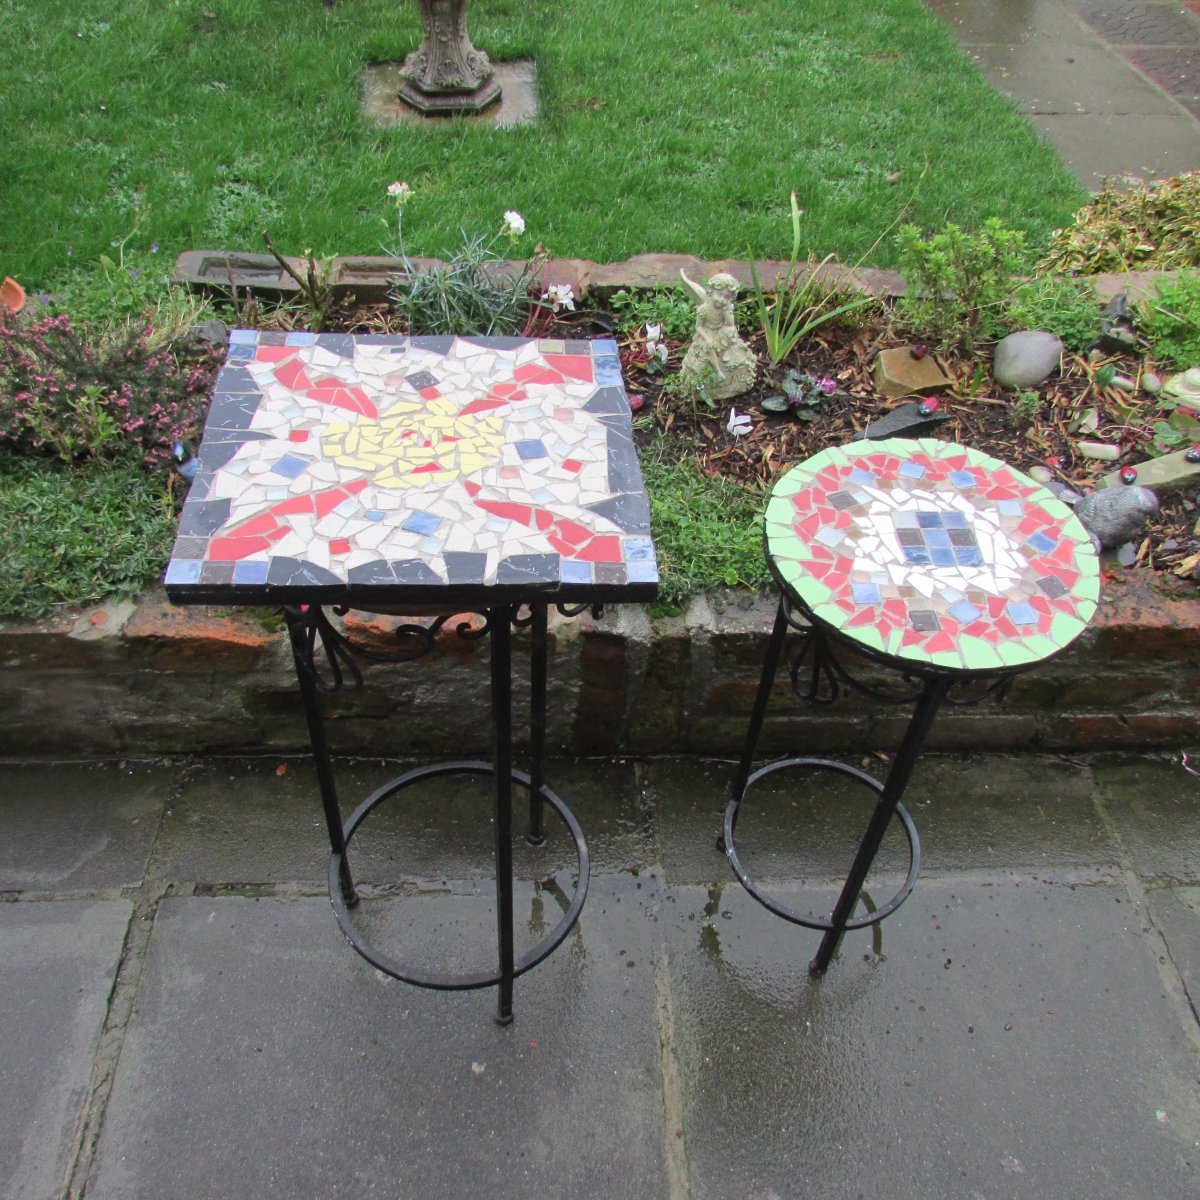 How to Make a Mosaic Table Top Design With Ceramic Tiles